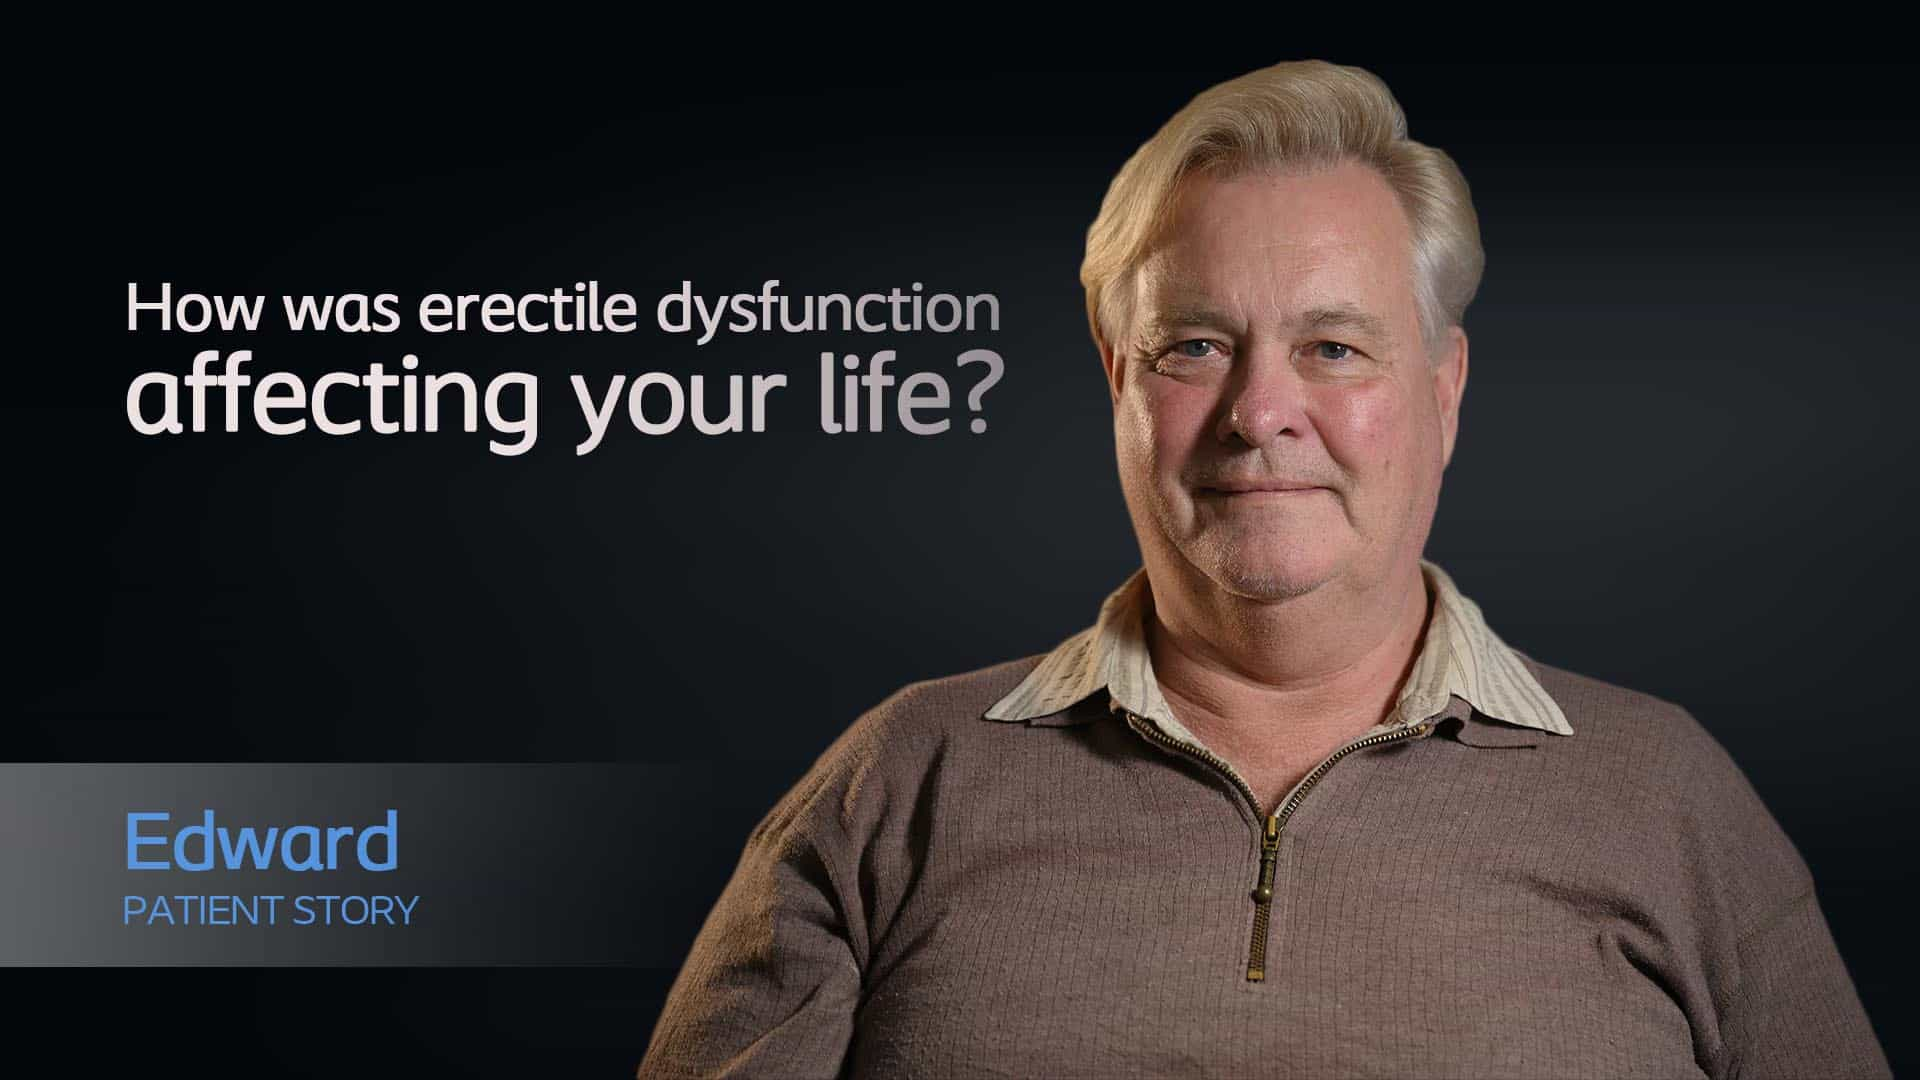 How was erectile dysfunction affecting your life?